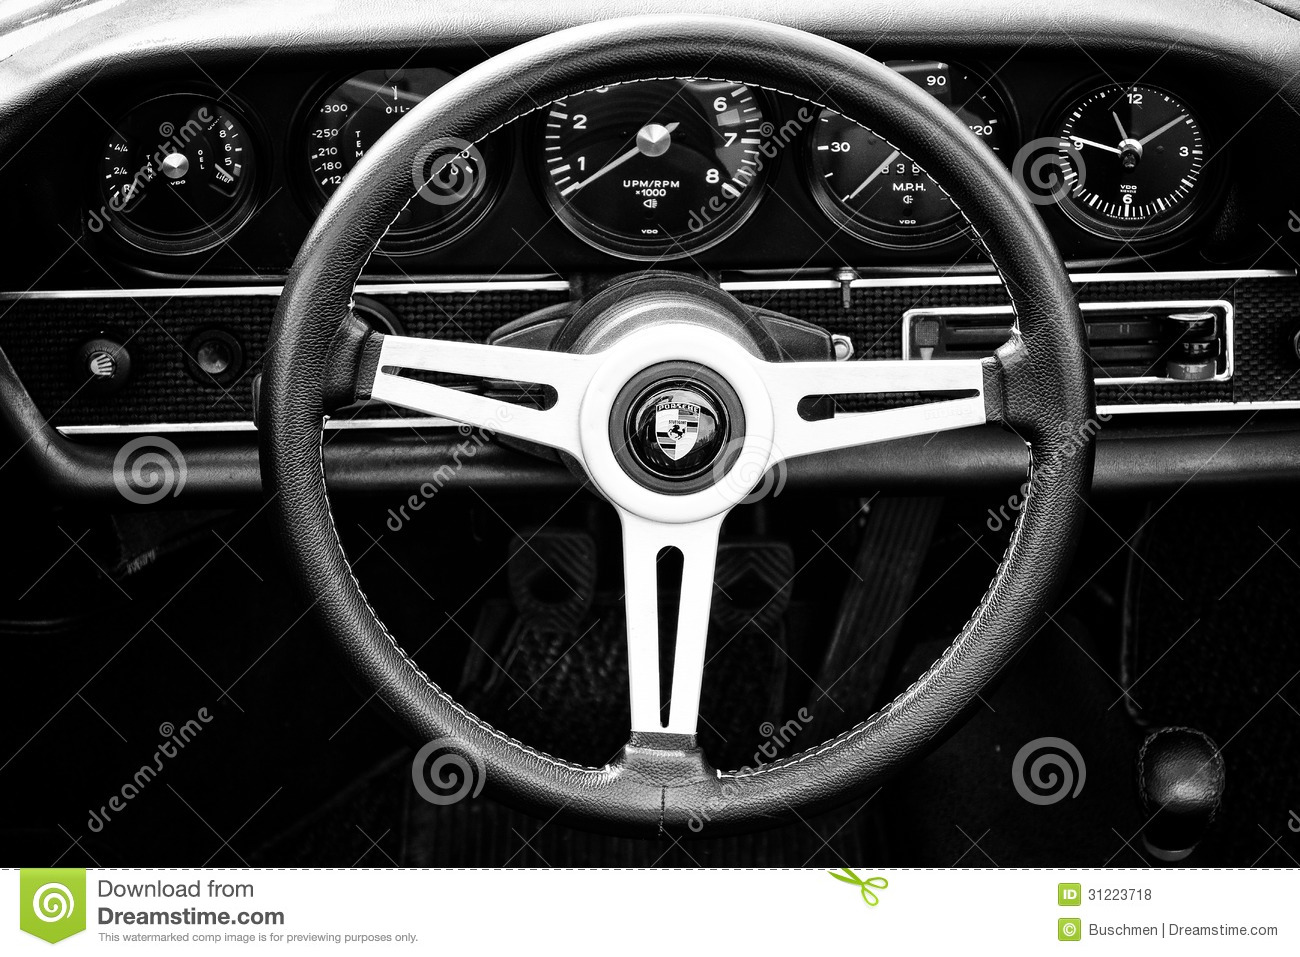 Vintage Car Design Wallpaper Cab Porsche 911 Targa Black And White Editorial Stock